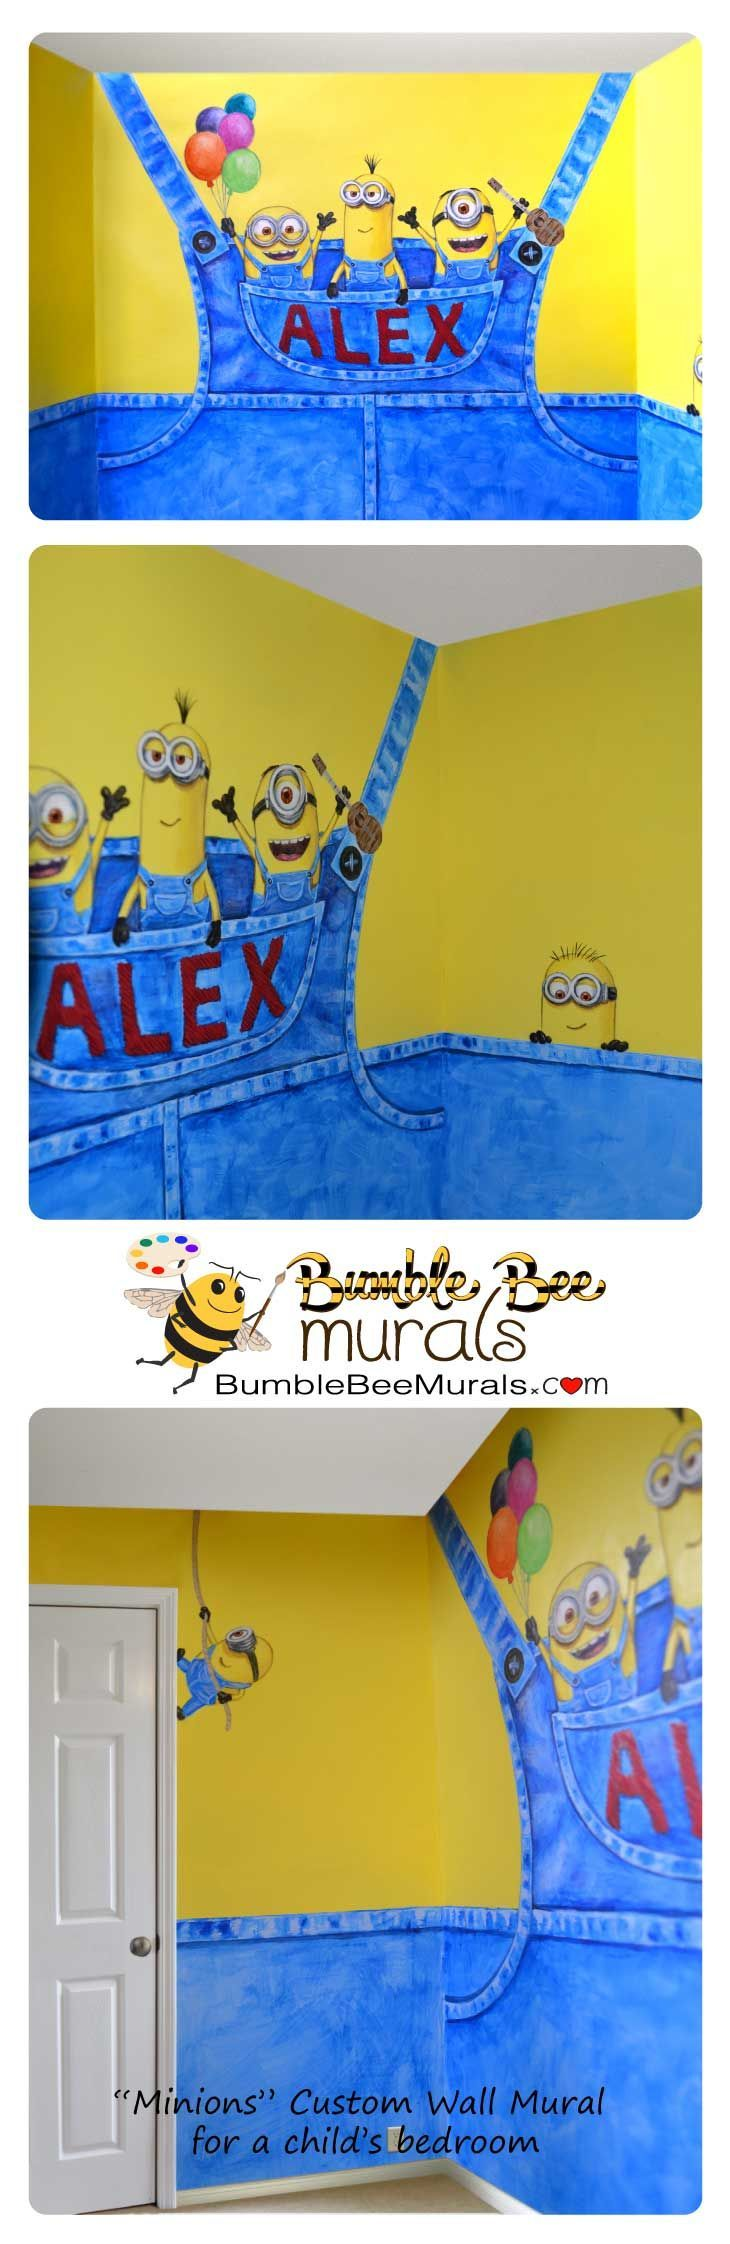 Süsse Wandbemalung im Minions Style | Kinderzimmer Wandgestaltung | Cute Minions inspired custom wall mural hand painted for a child's bedroom. #mini…